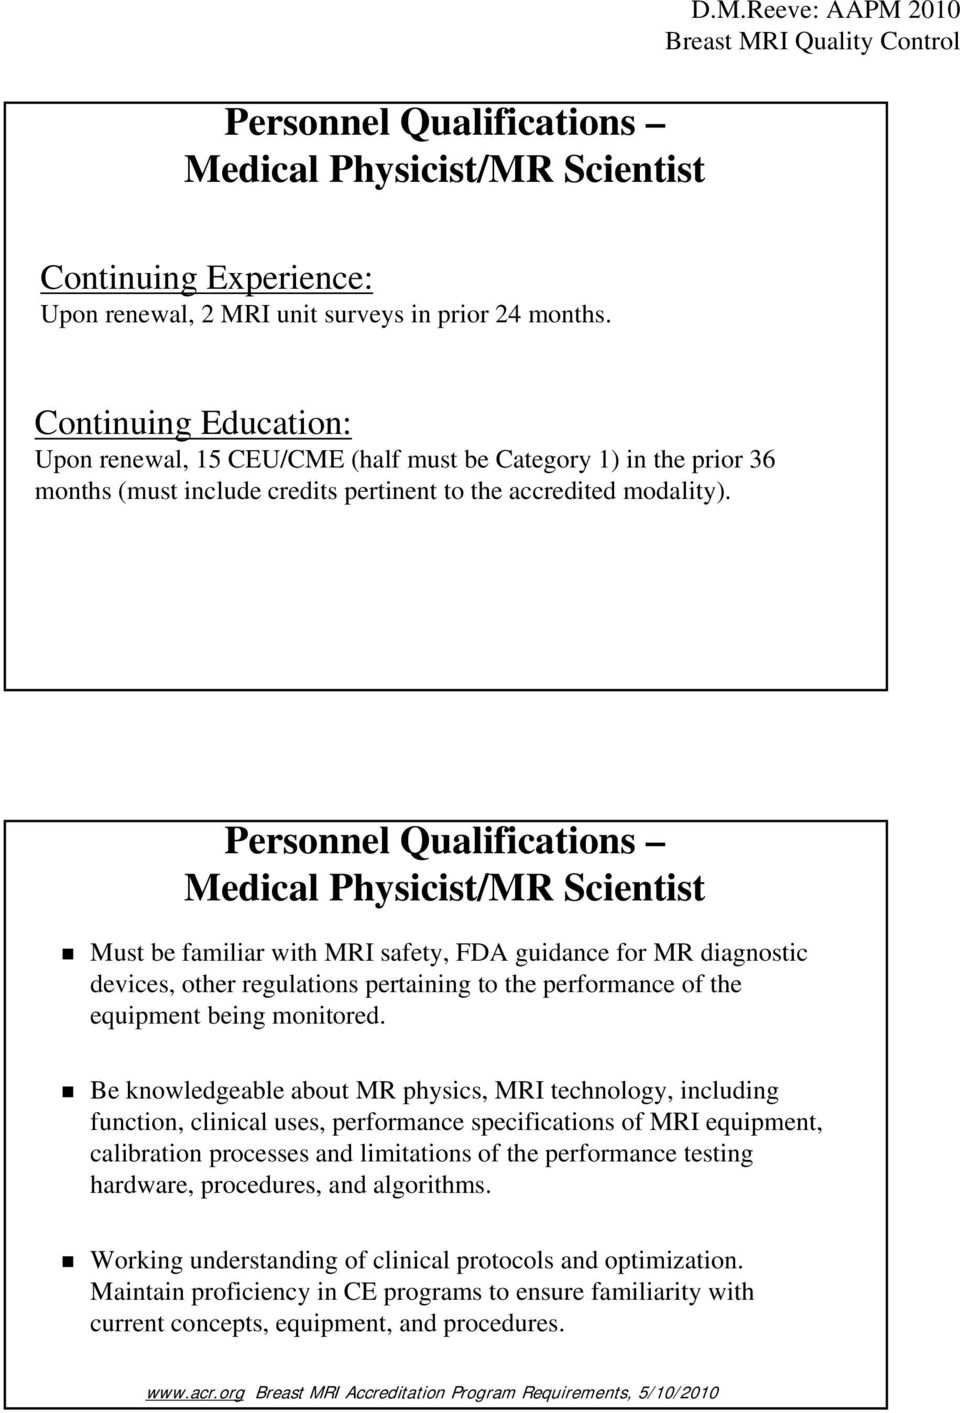 Personnel Qualifications Medical Physicist/MR Scientist Must be familiar with MRI safety, FDA guidance for MR diagnostic devices, other regulations pertaining to the performance of the equipment